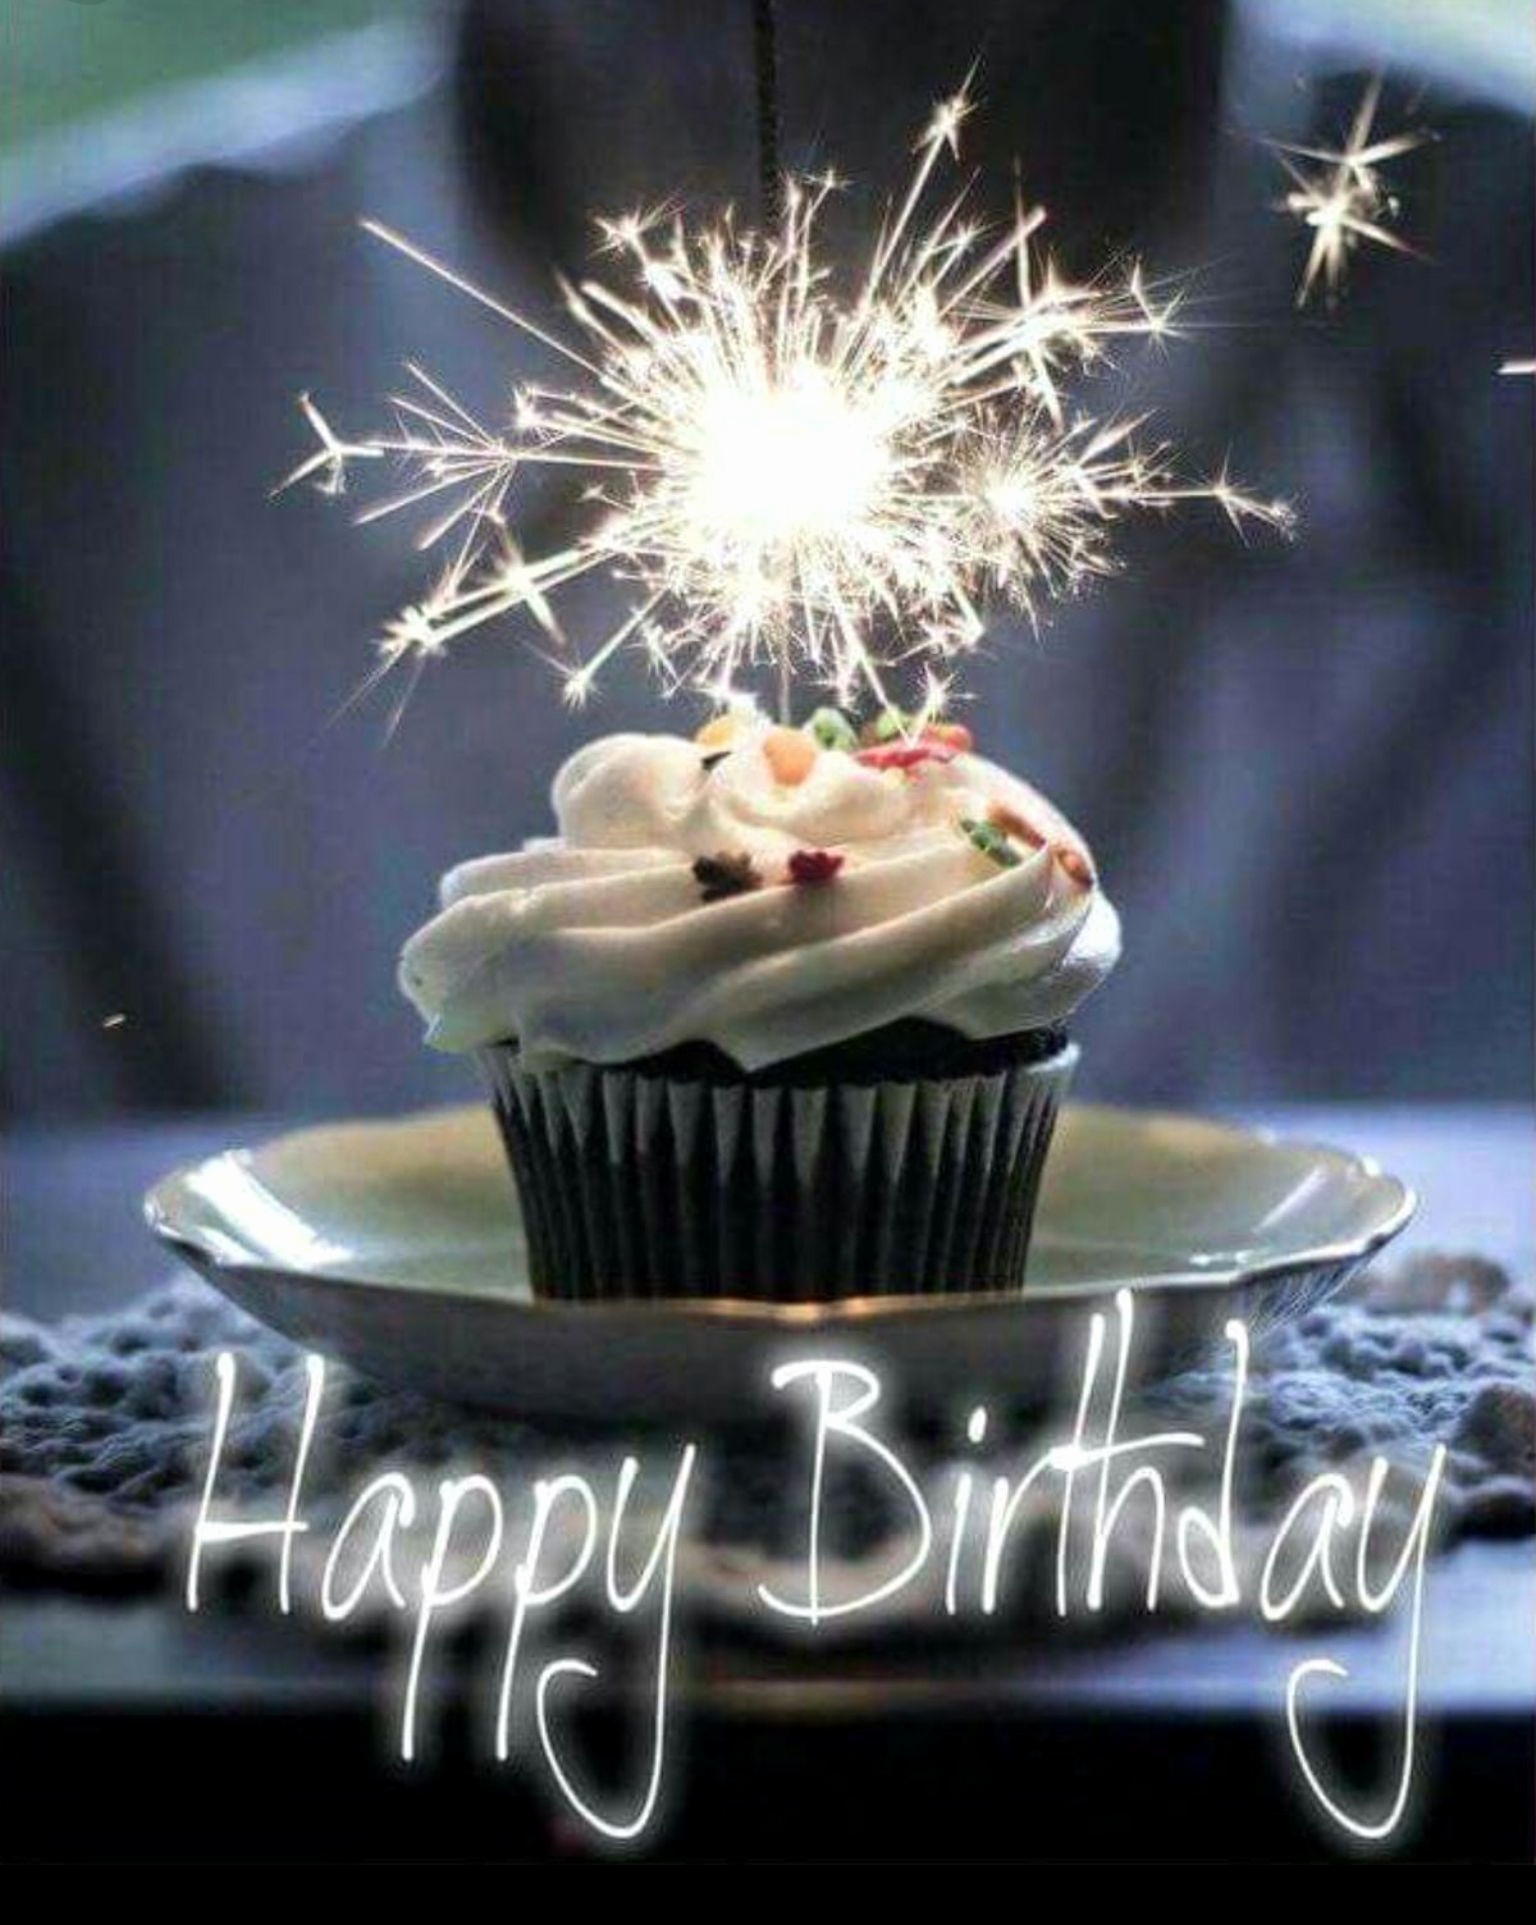 birthday-cards-with-wishes-words-beautiful-happy-birthday-cupcake-happy-birthday-pinterest-of-birthday-cards-with-wishes-words.jpg